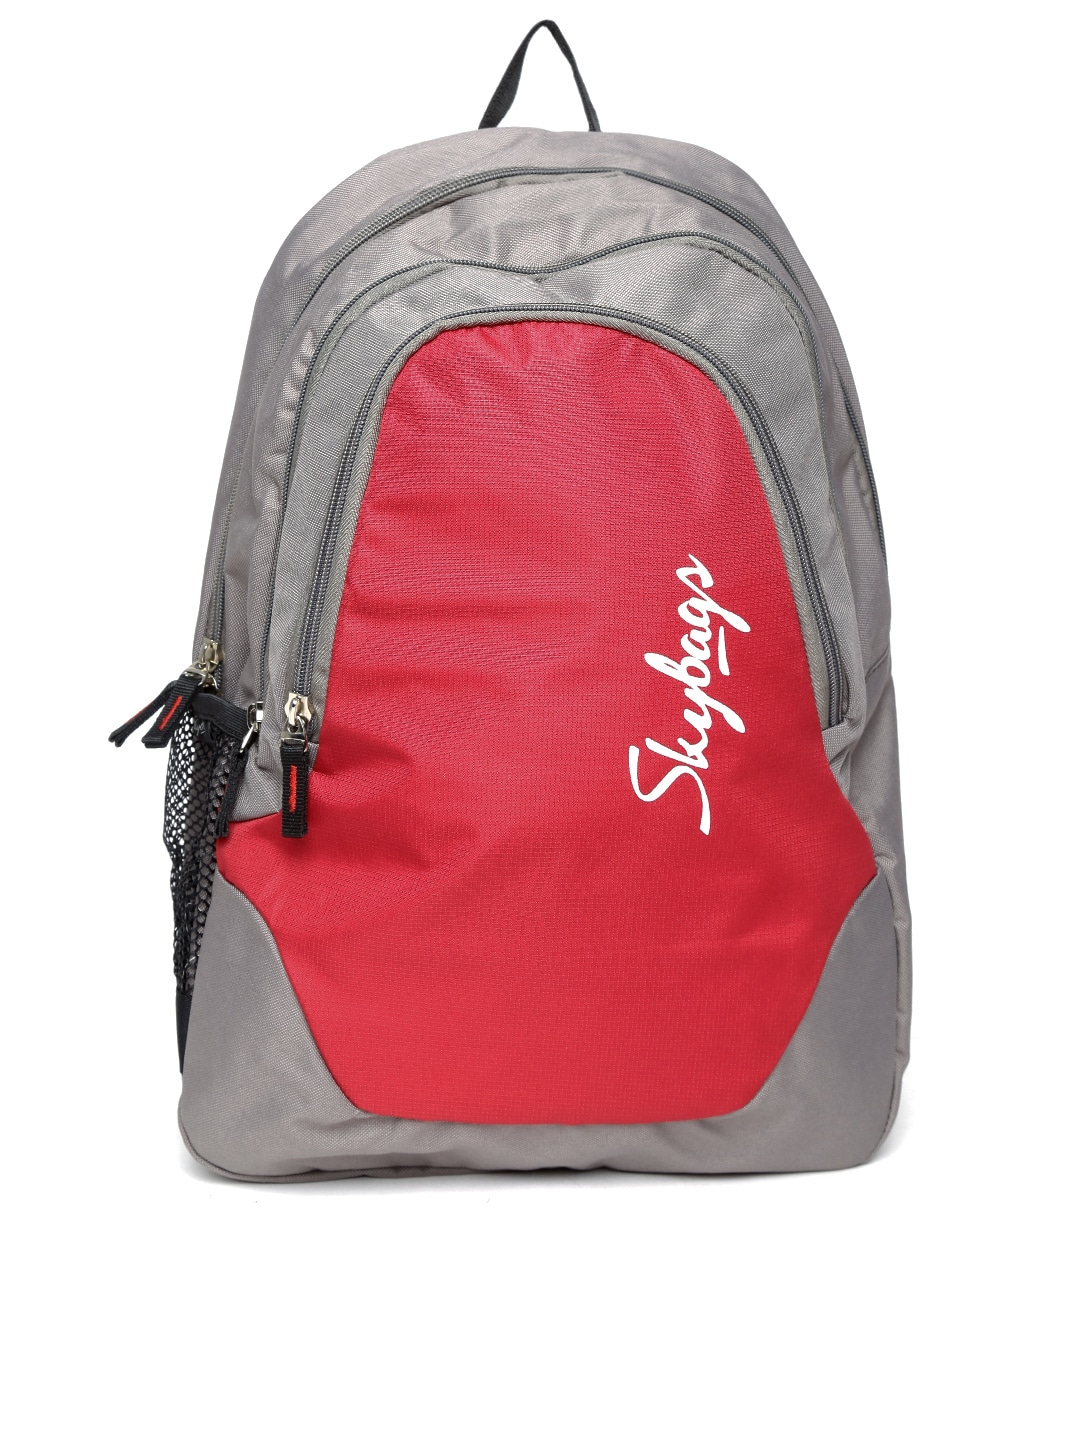 Backpacks - Buy Backpack Online for Men 3274424166b04